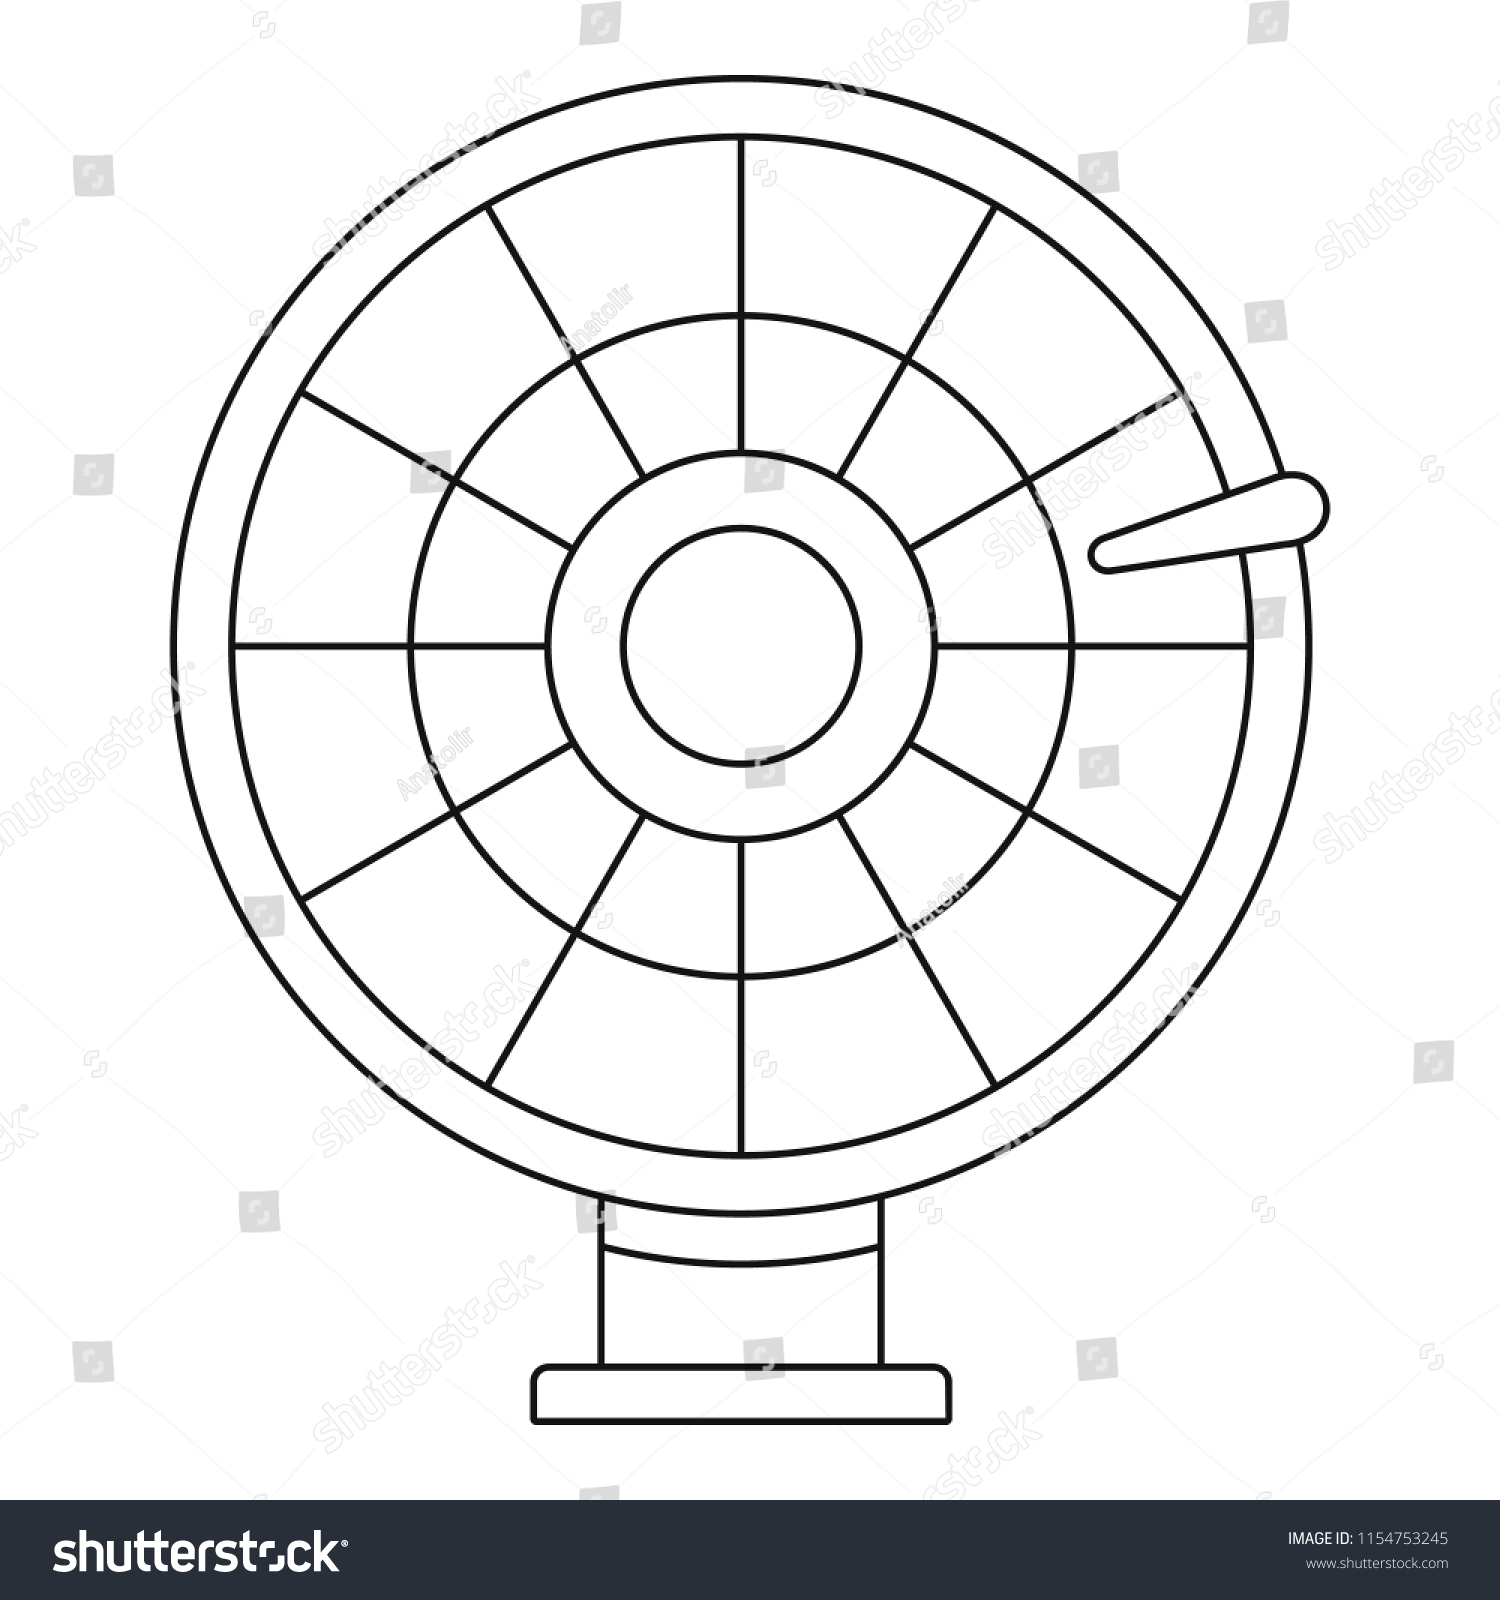 Color Lucky Wheel Icon Outline Color Stock Illustration 1154753245